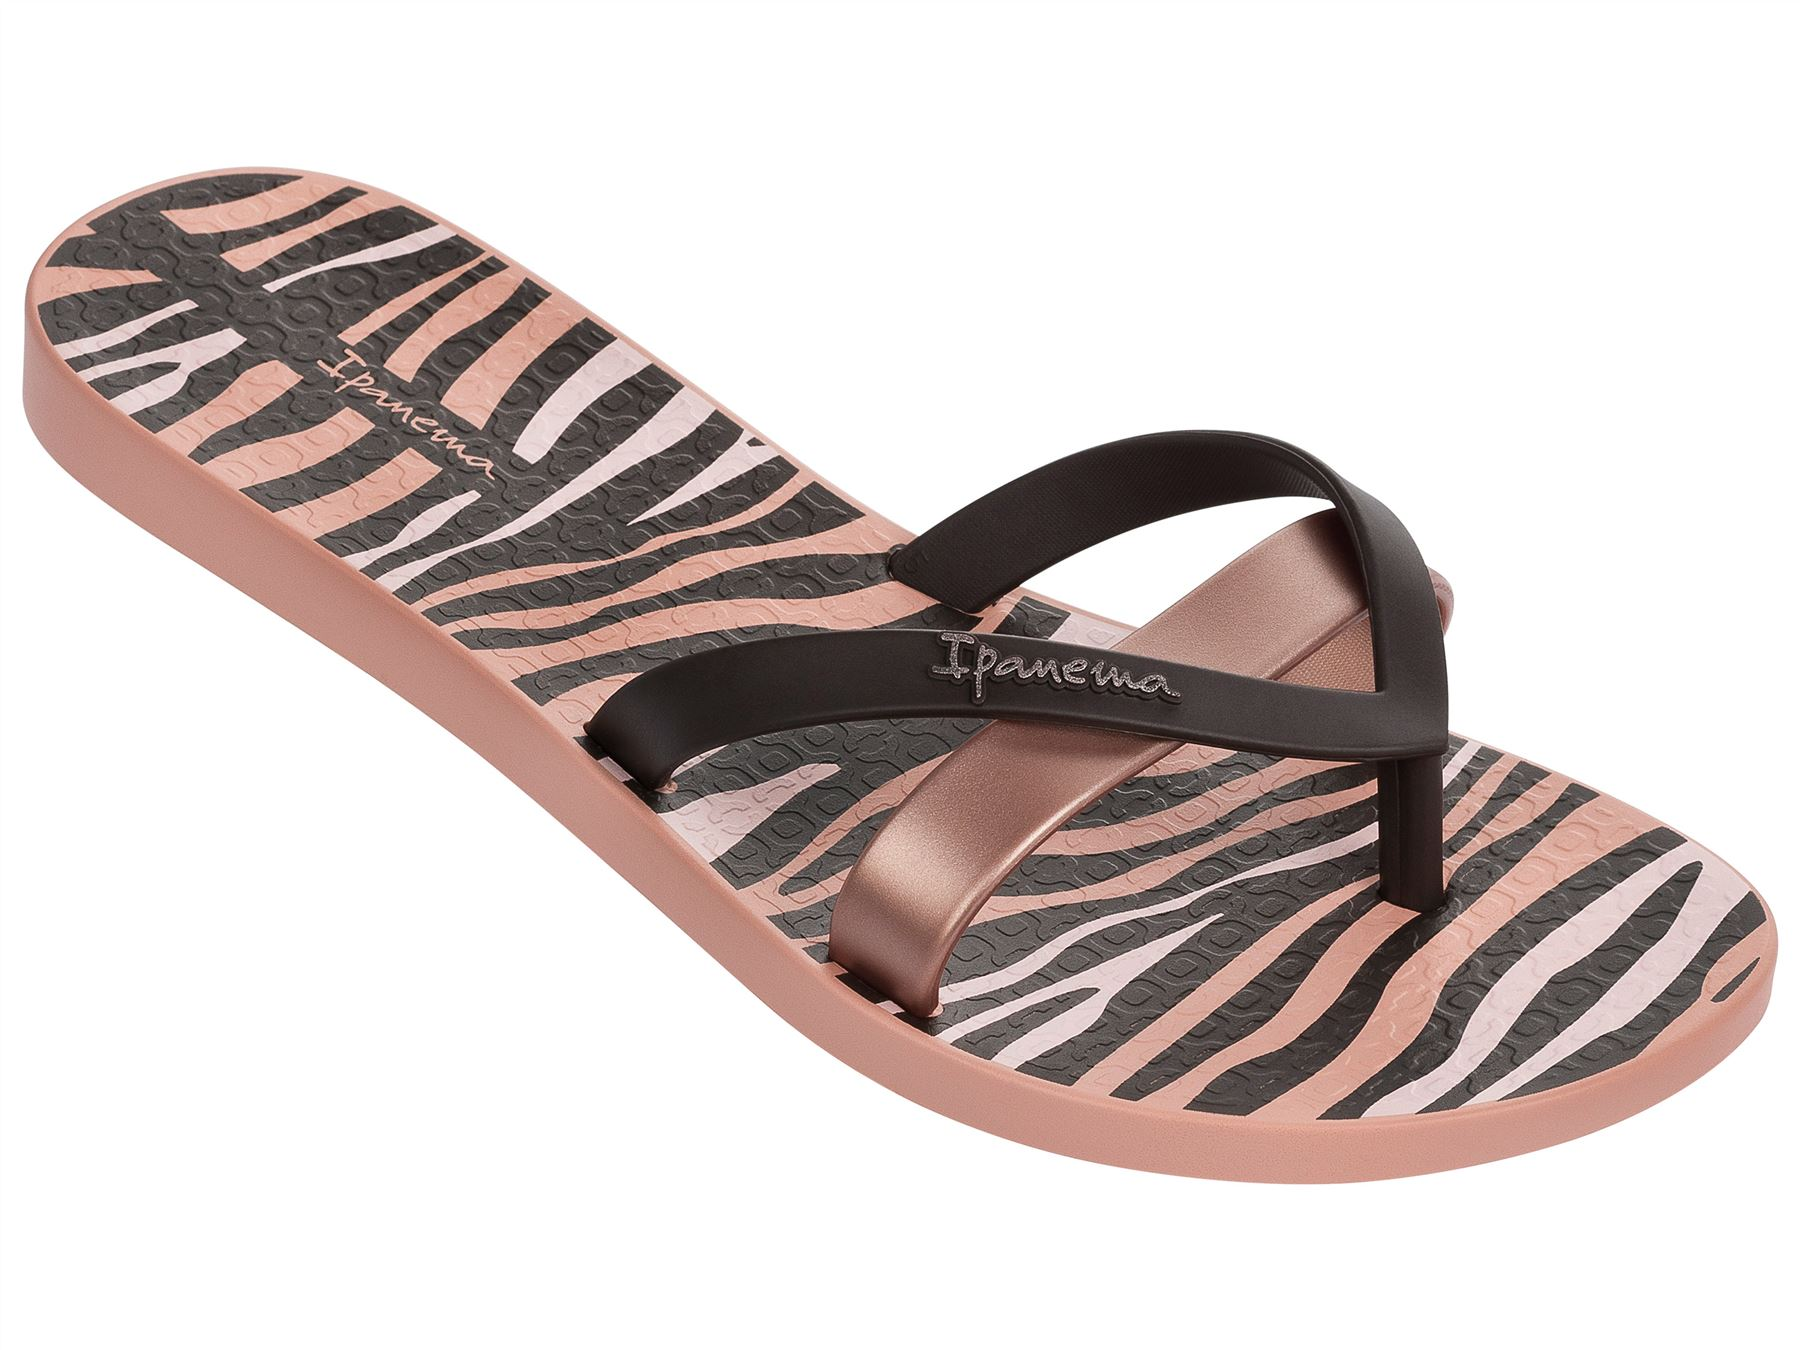 cd45d962aaa08 Ipanema Brasil Silk II 2017 Brn rose Gold Womens Flip Flops Size UK 5 (eu  38). About this product. Picture 1 of 2  Picture 2 of 2